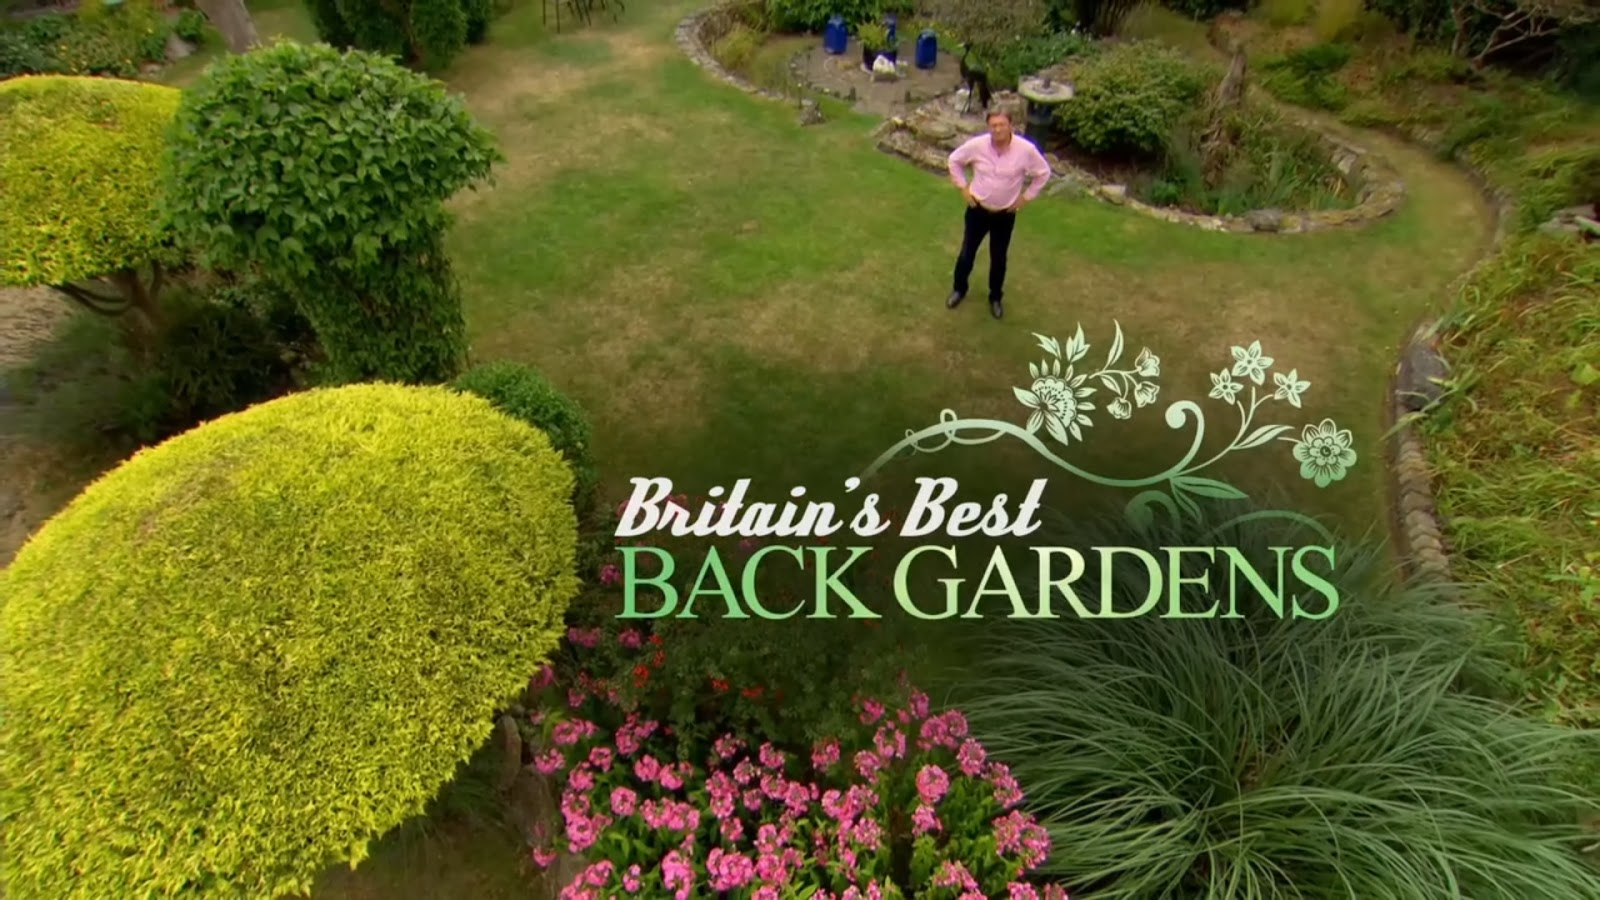 Britains Best Back Gardens Working Gardens Ep Gardening And - Pictures of back gardens